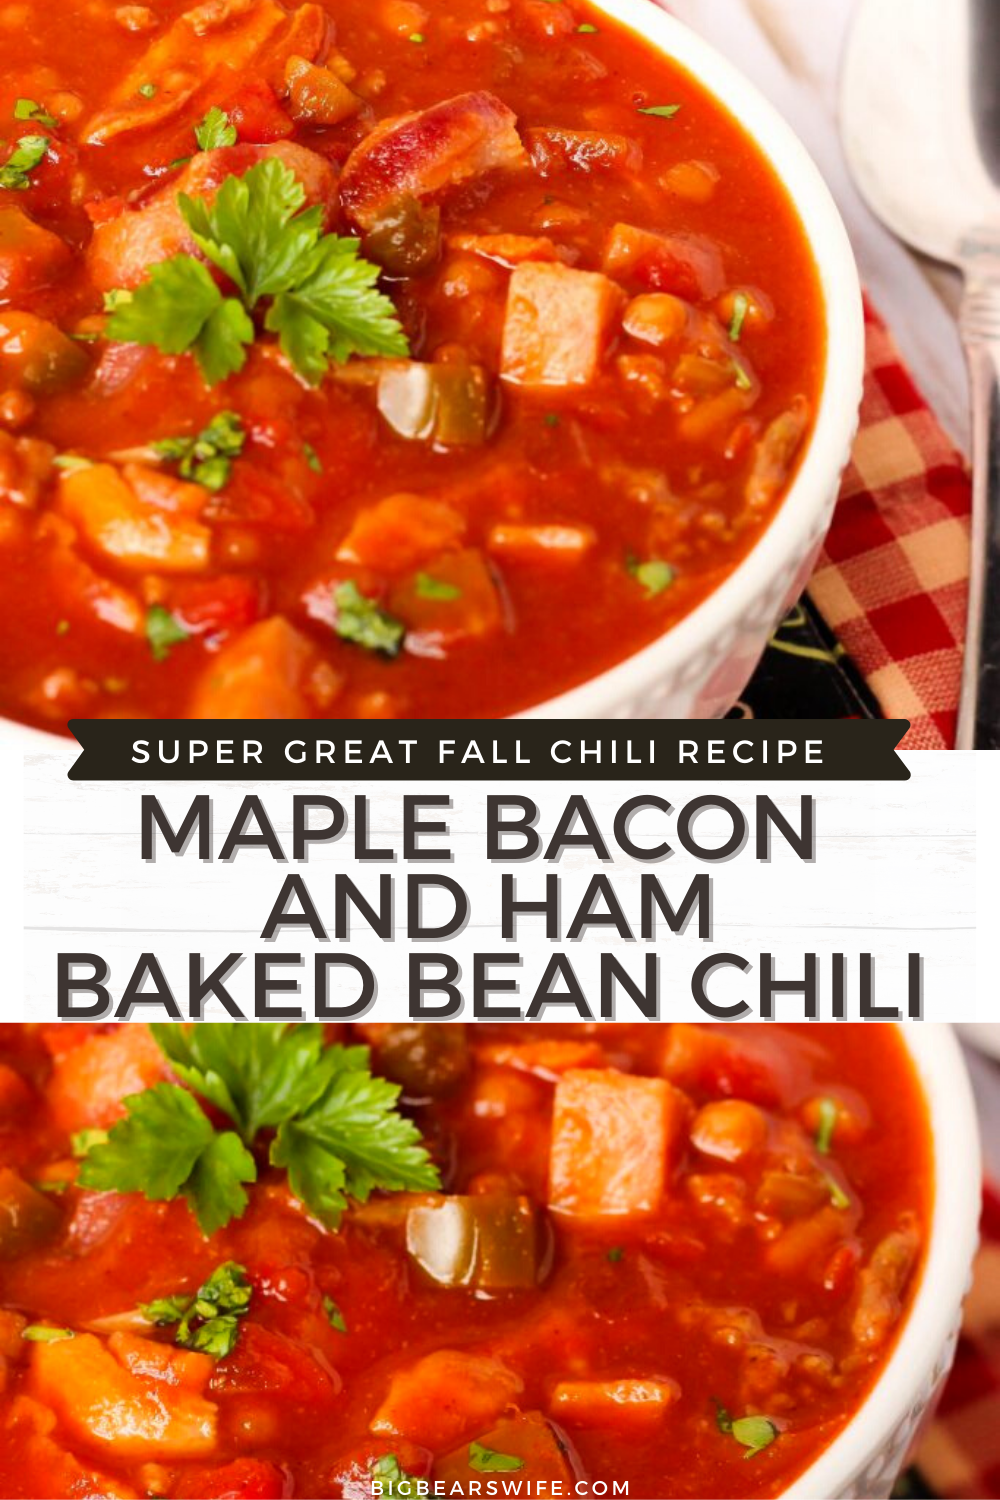 Maple Bacon and Ham Baked Bean Chili - ThisMaple Bacon and Ham Baked Bean Chili is a nod to my home in Virginia and the flavors that come from around the state. This will warm you up! BigBearsWife fans LOVE this tasty fall recipe! Click the photo to grab the recipe! Maple, Bacon and Chili is amazing together! You'll love this! There are more fall recipes on the blog too!  via @bigbearswife